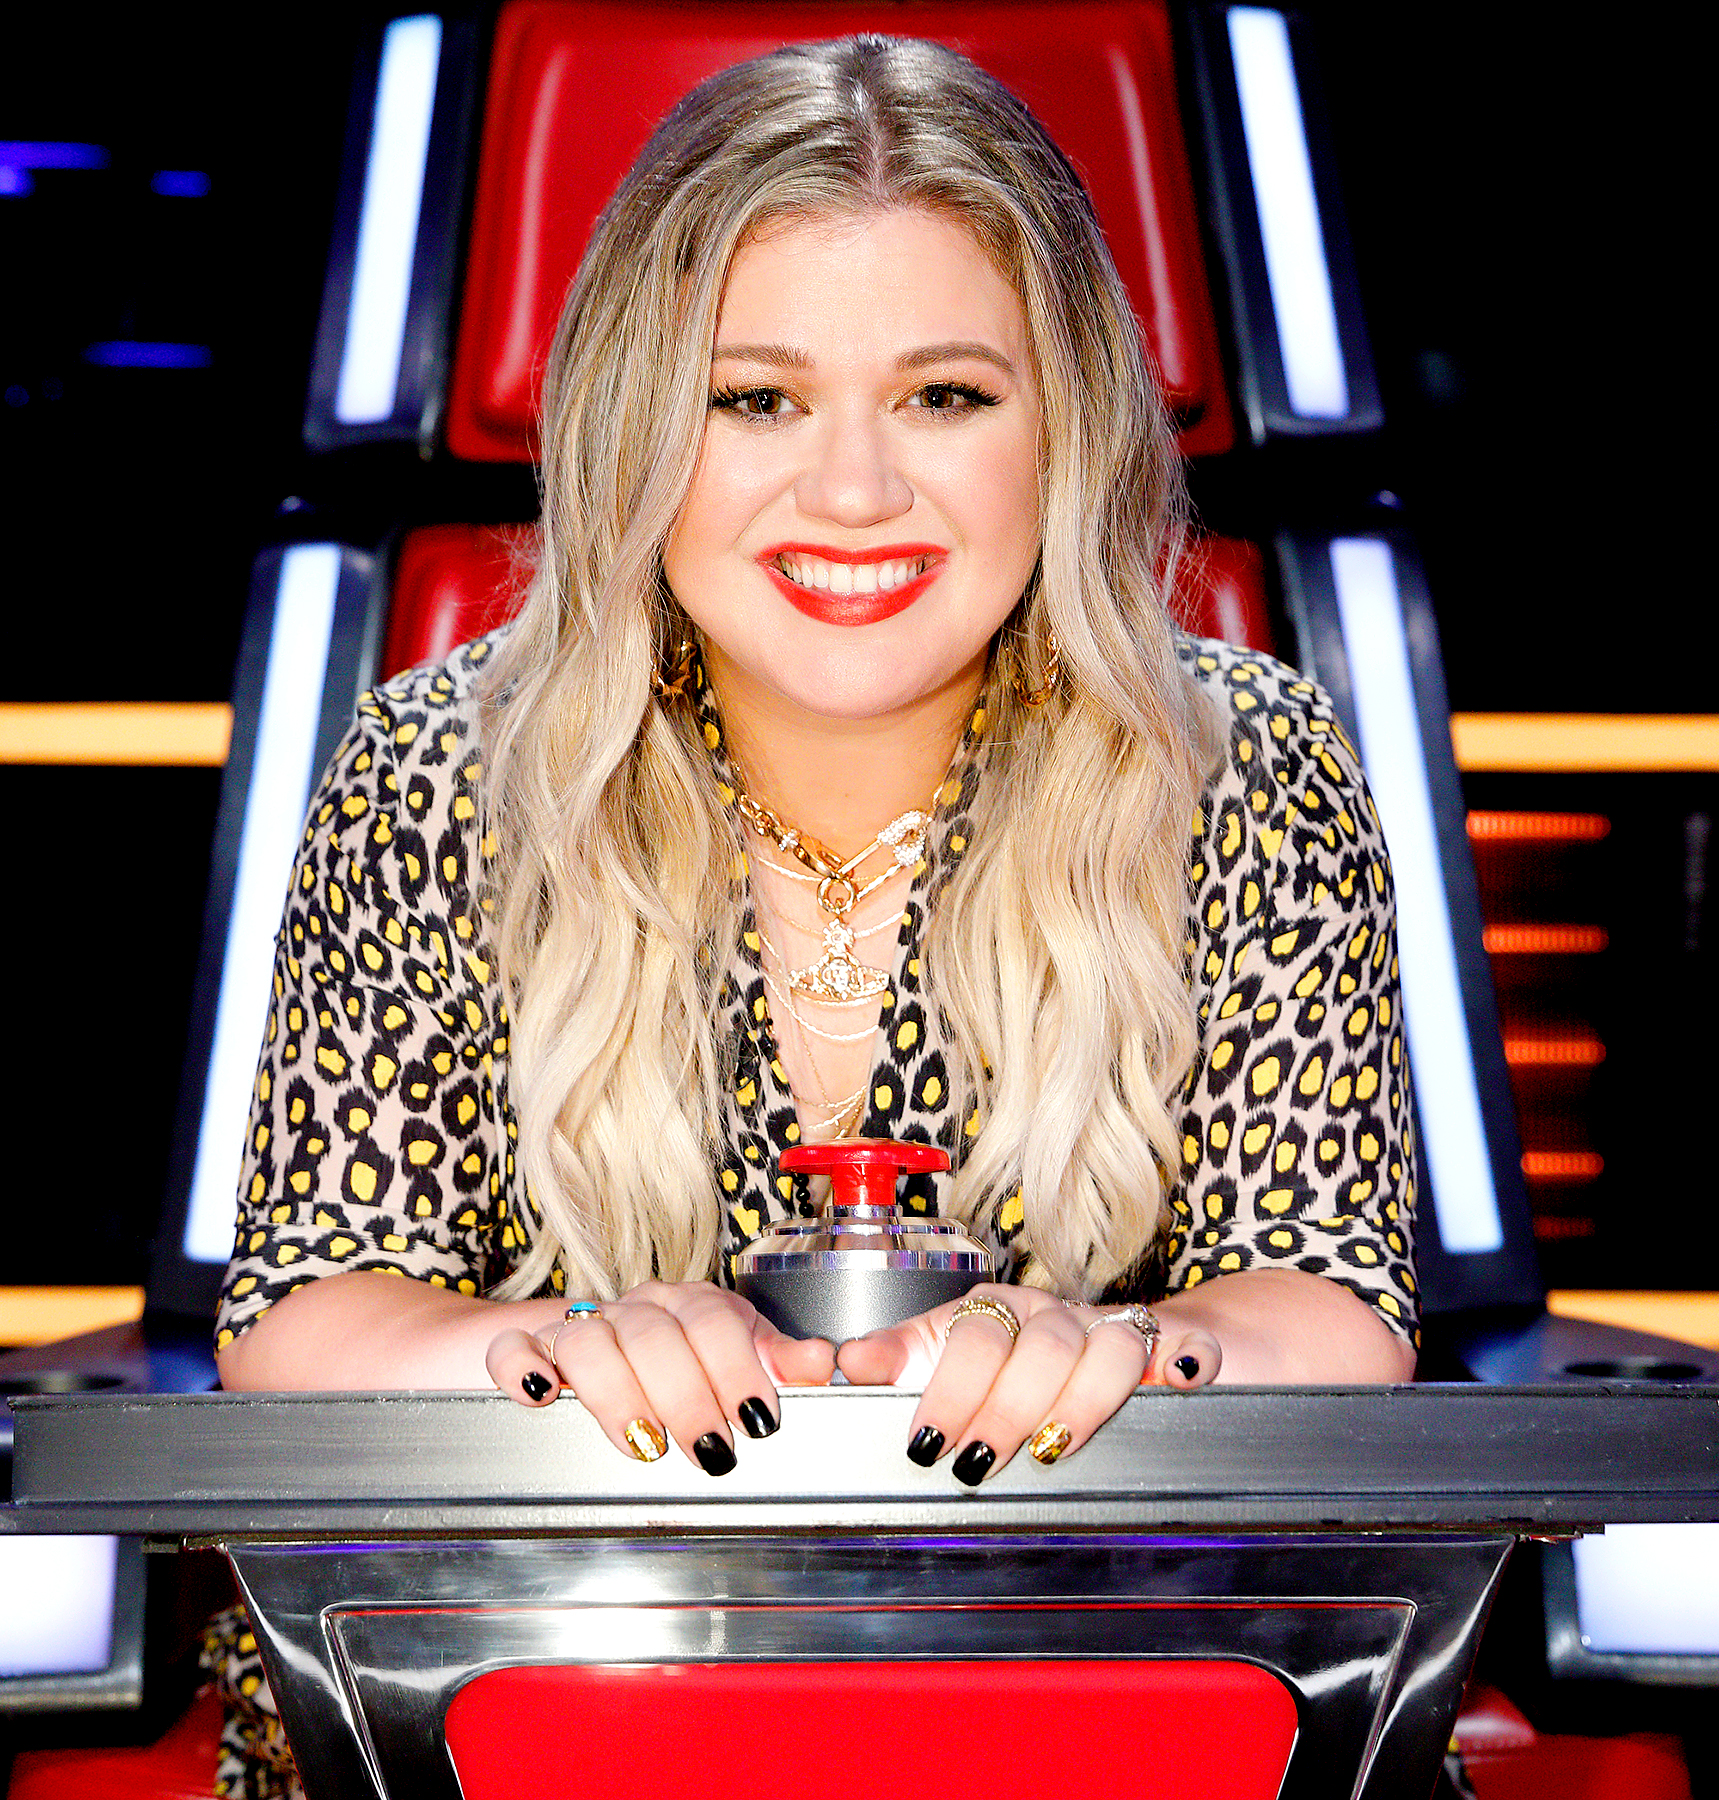 Kelly Clarkson admits raising kids as 'challenging'